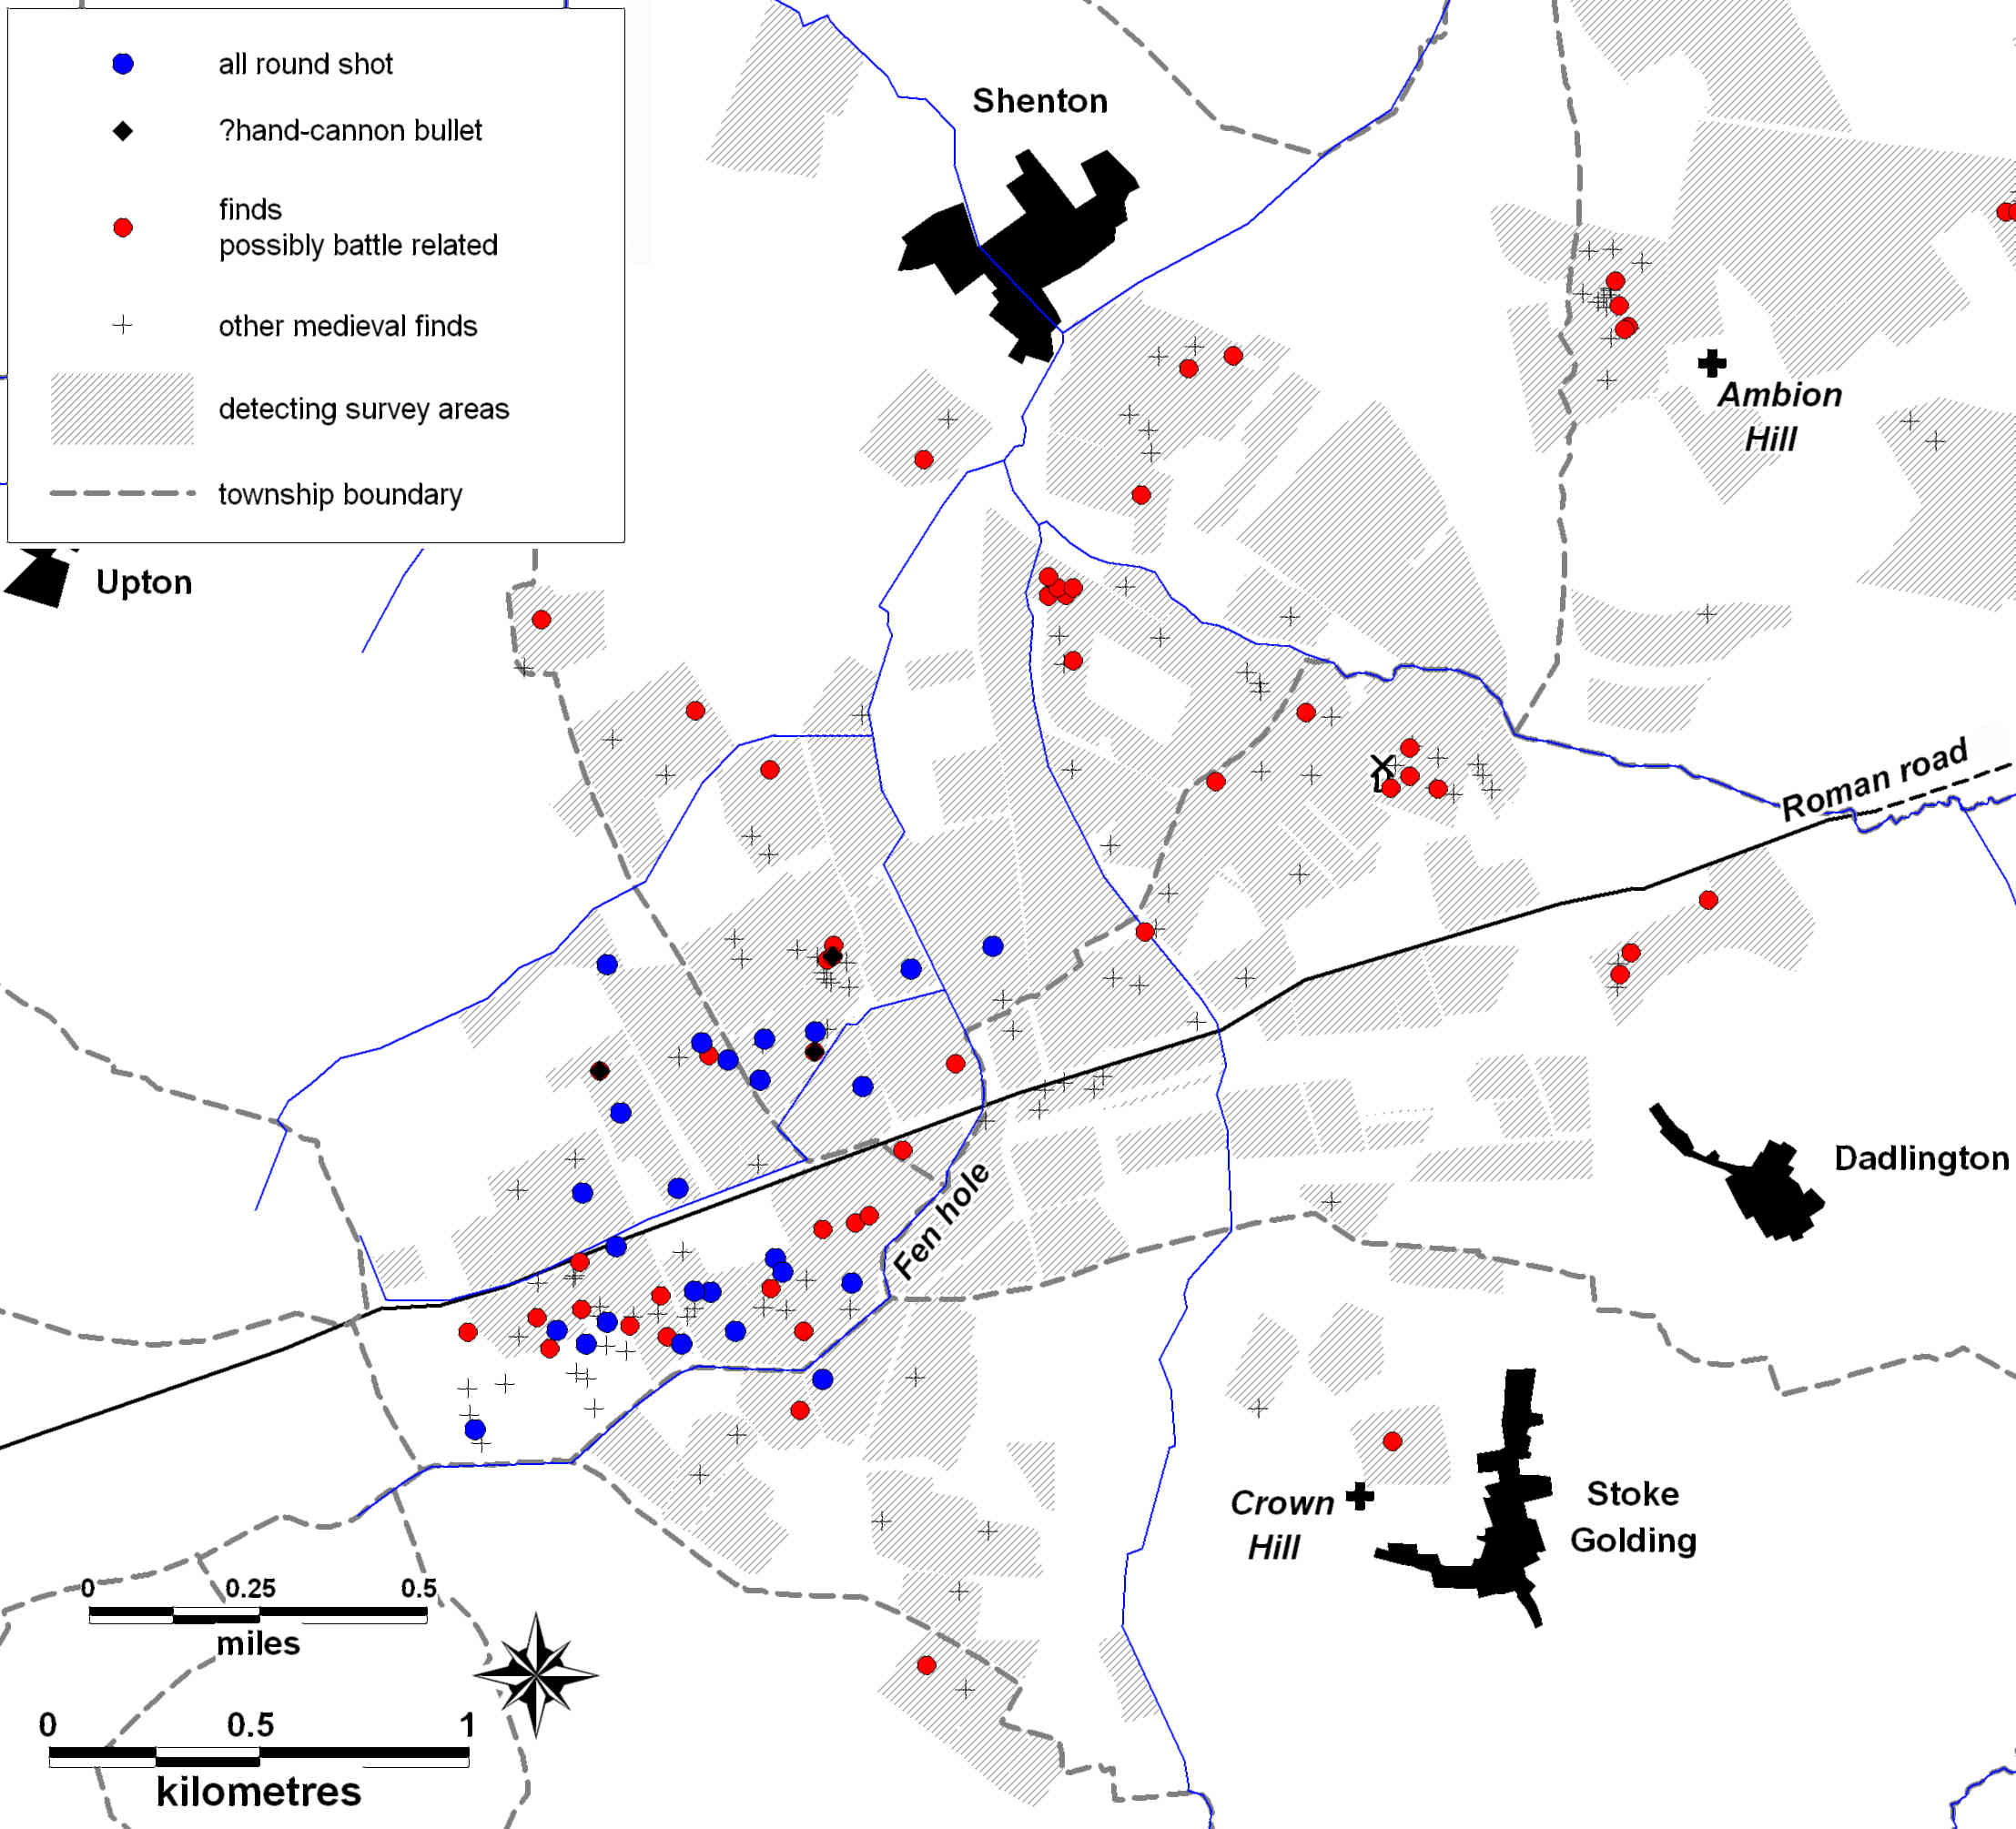 A map showing the distribution of features. Shot finds are concentrated in a small area, while more general battle-related finds are spread more widely.